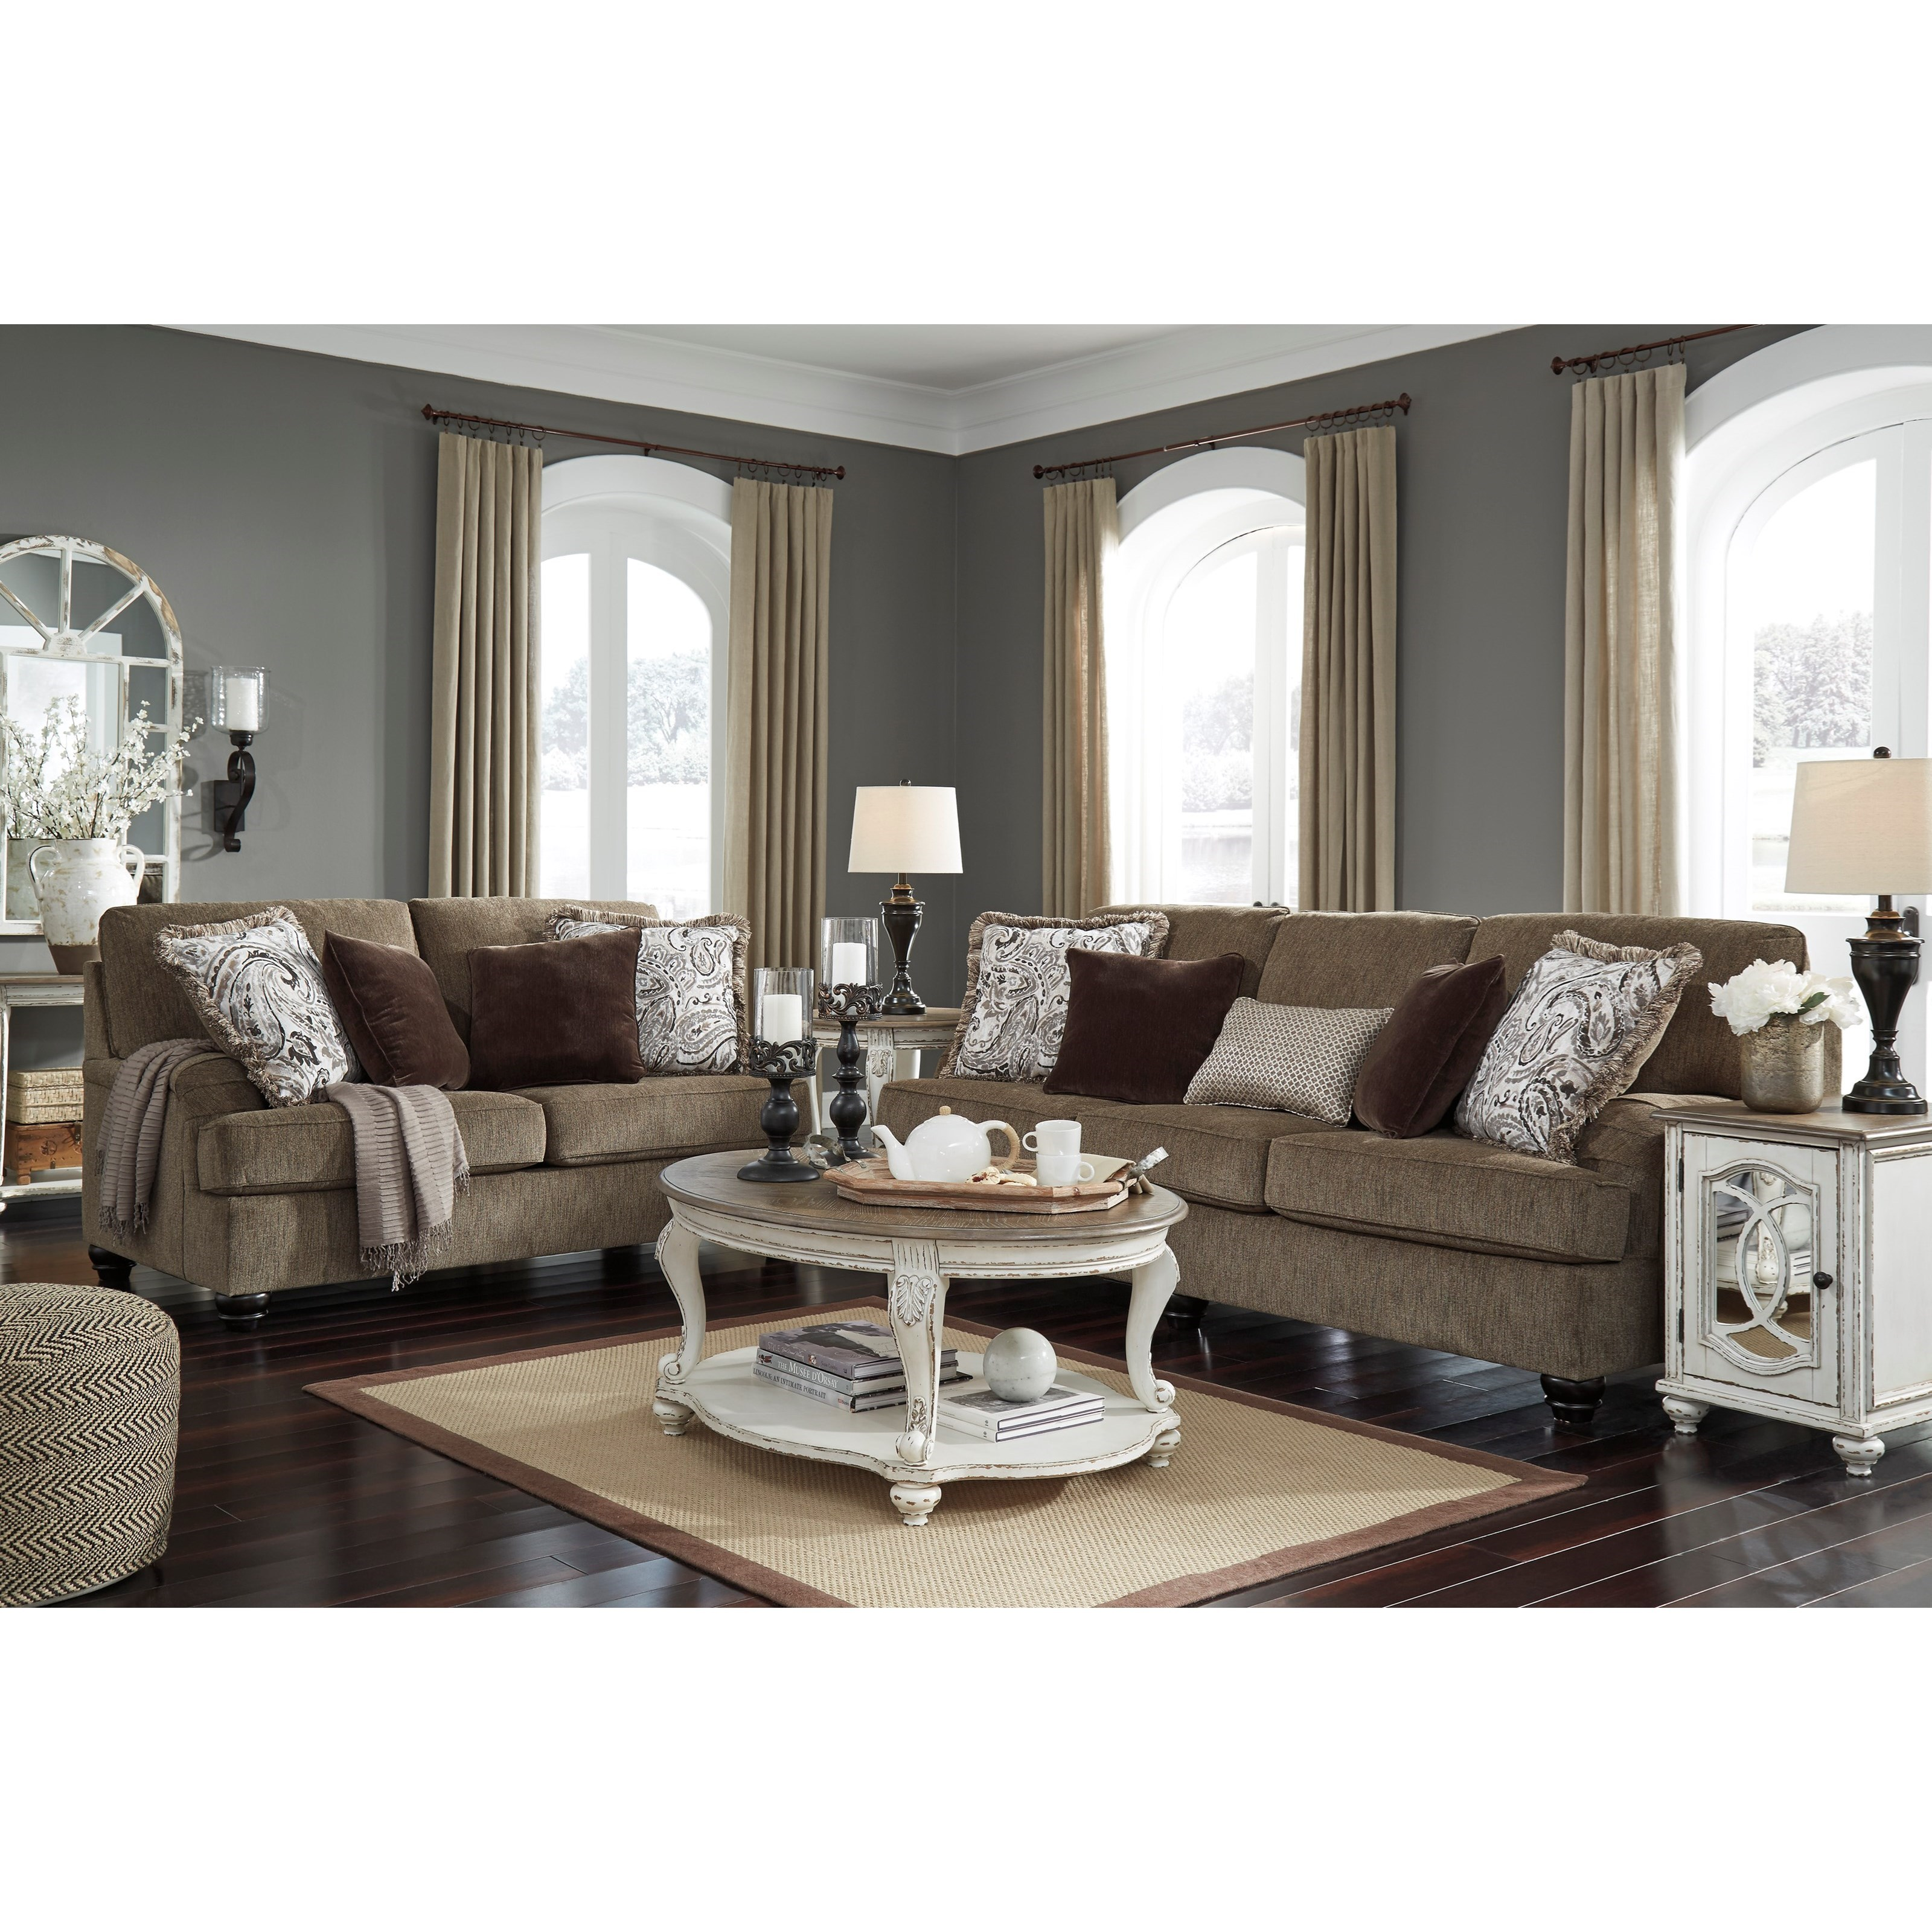 Ashley Furniture Current Sales Ad: Benchcraft By Ashley Braemar Transitional Loveseat With